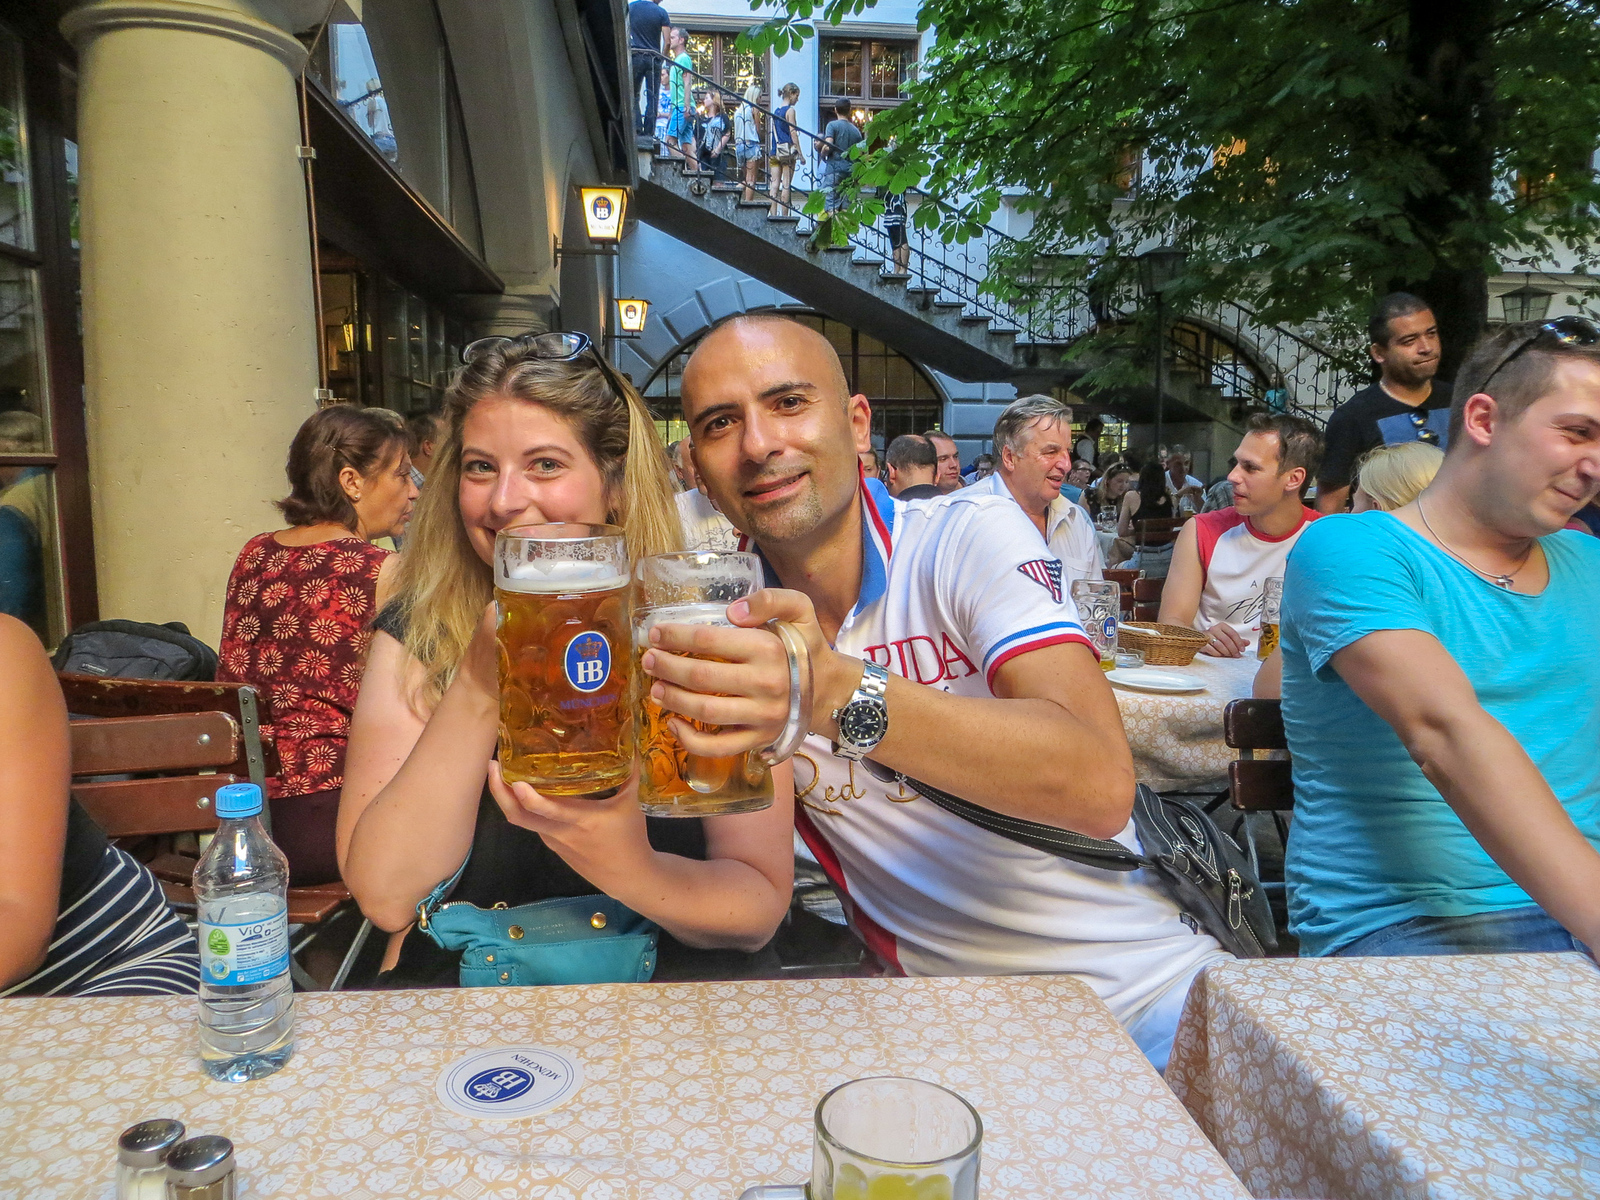 why should i visit germany? to go to excellent beer gardens